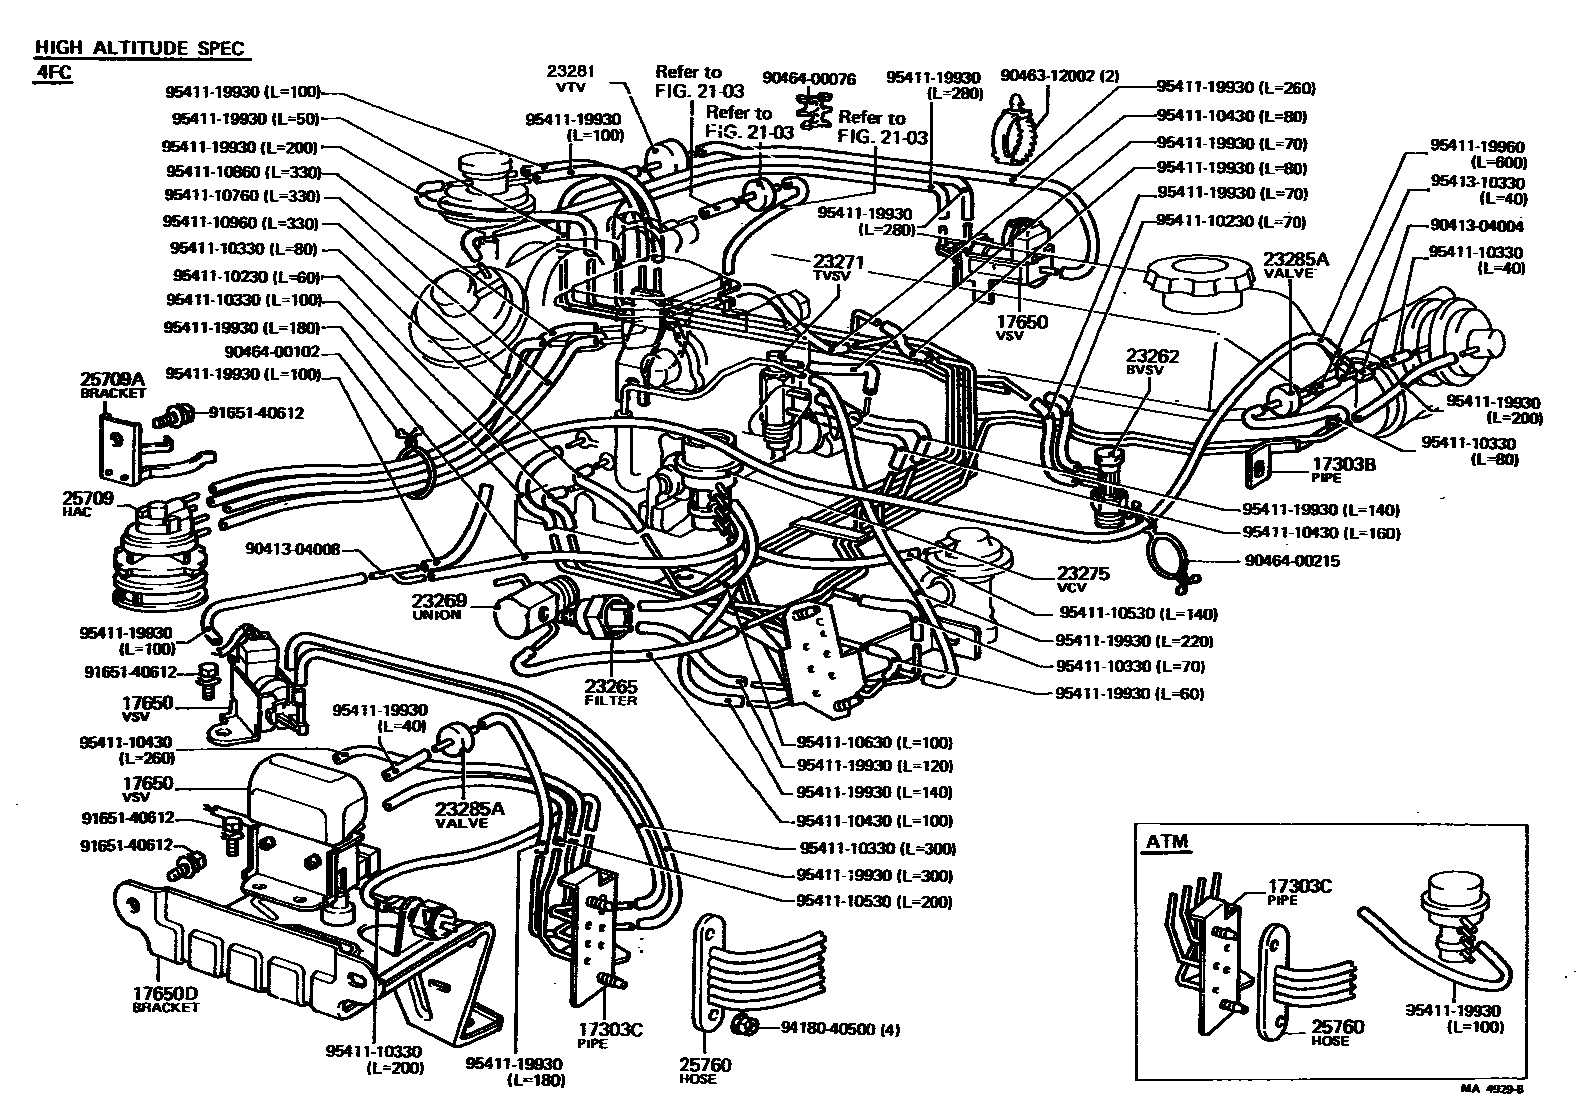 hight resolution of 08 toyota corolla engine diagram wiring diagram third level toyota 4runner pro 1994 corolla engine diagram